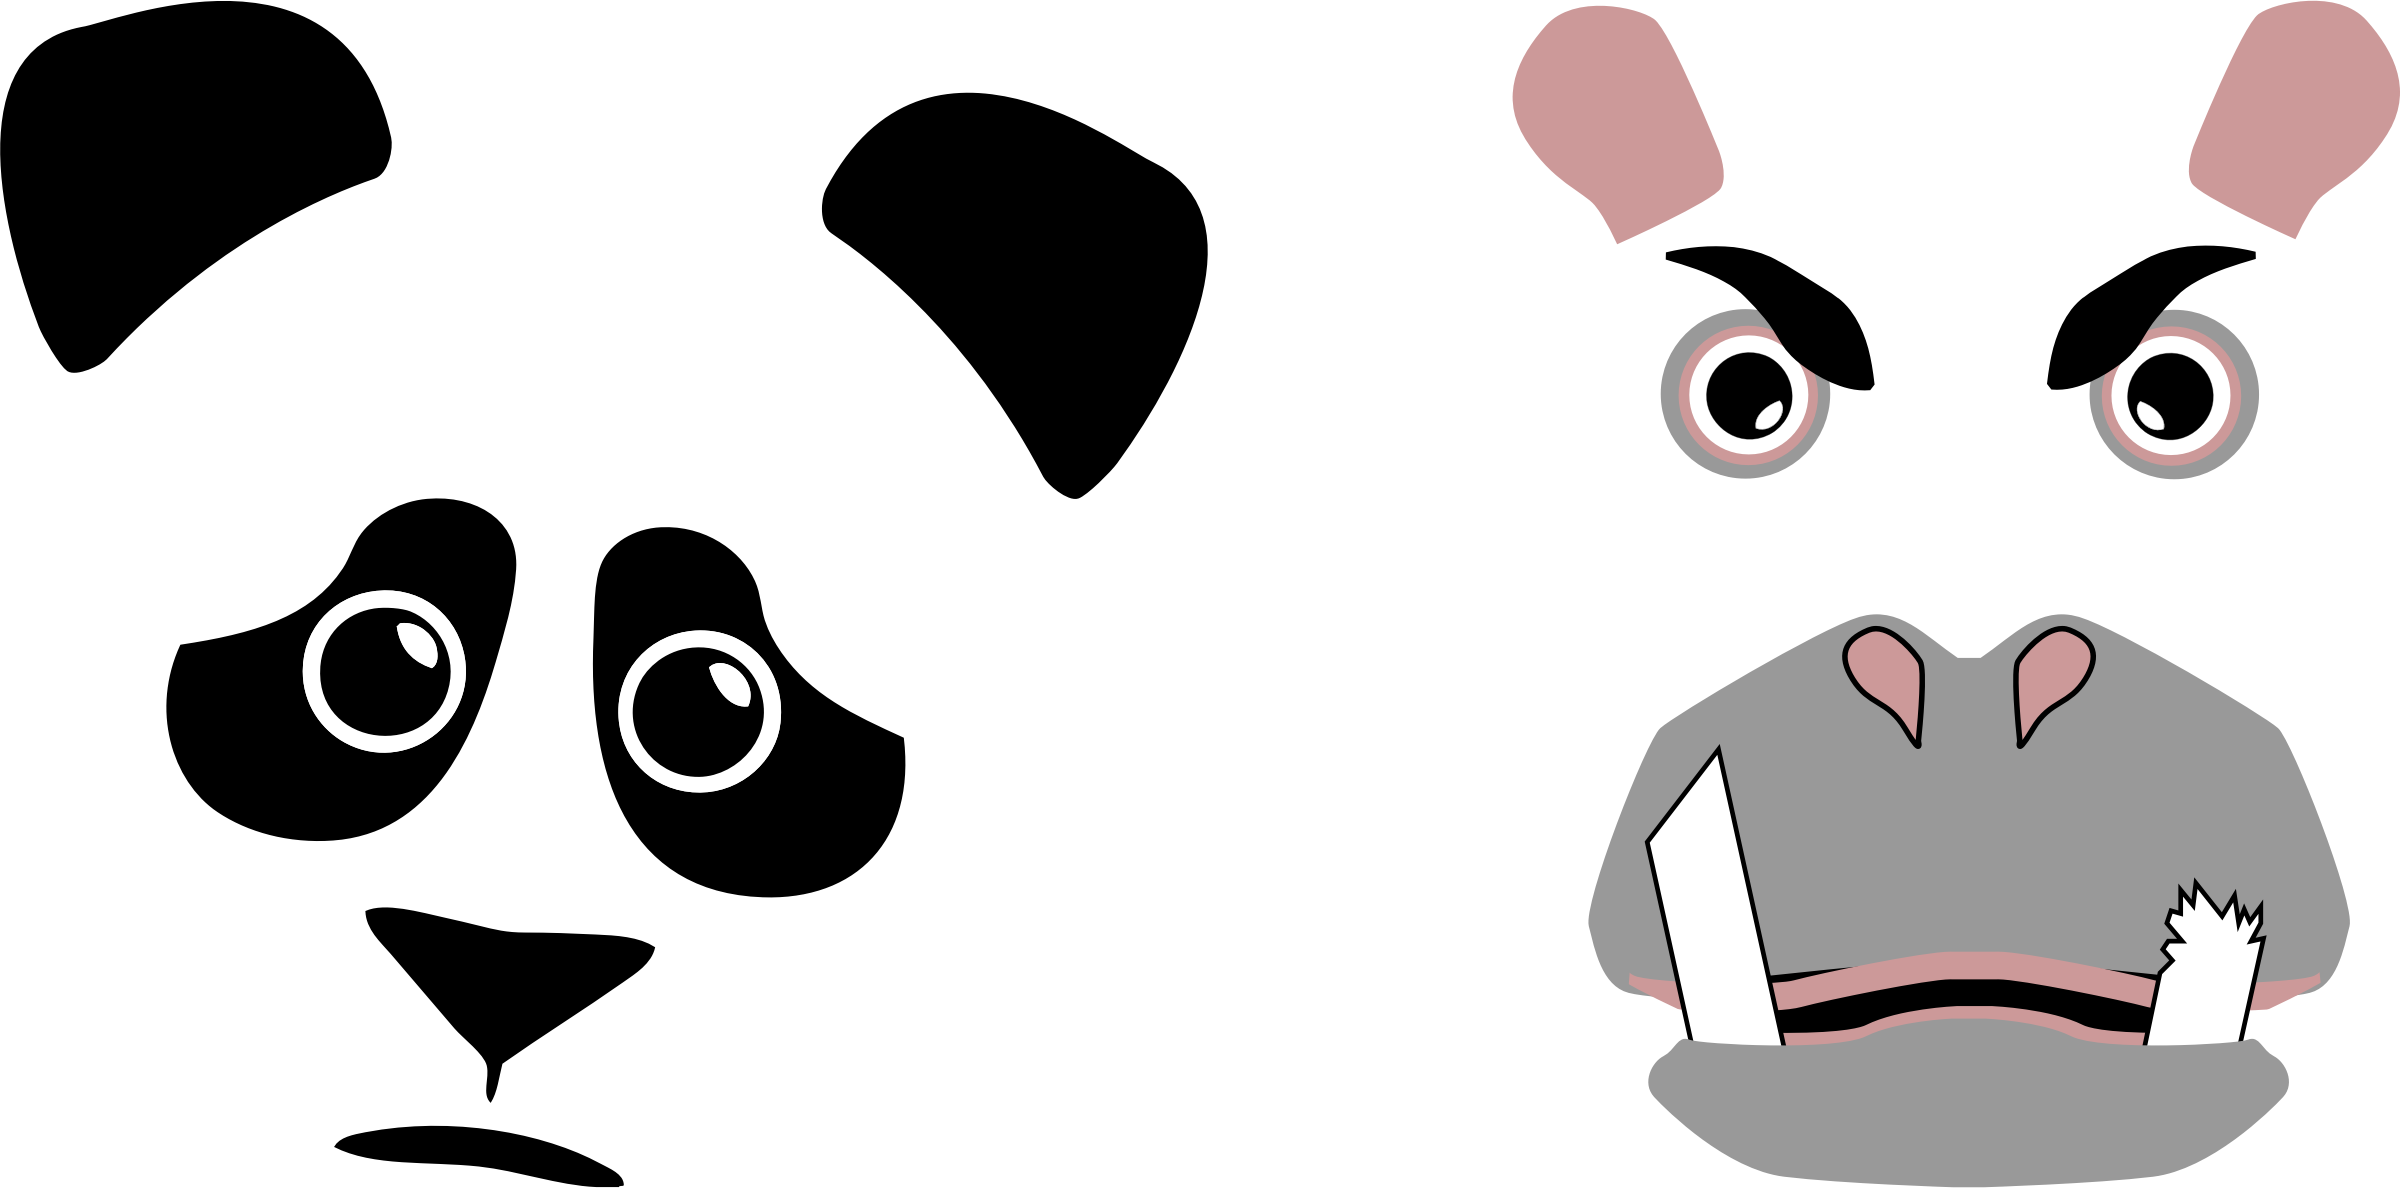 Angry panda png. Hippo best friends forever